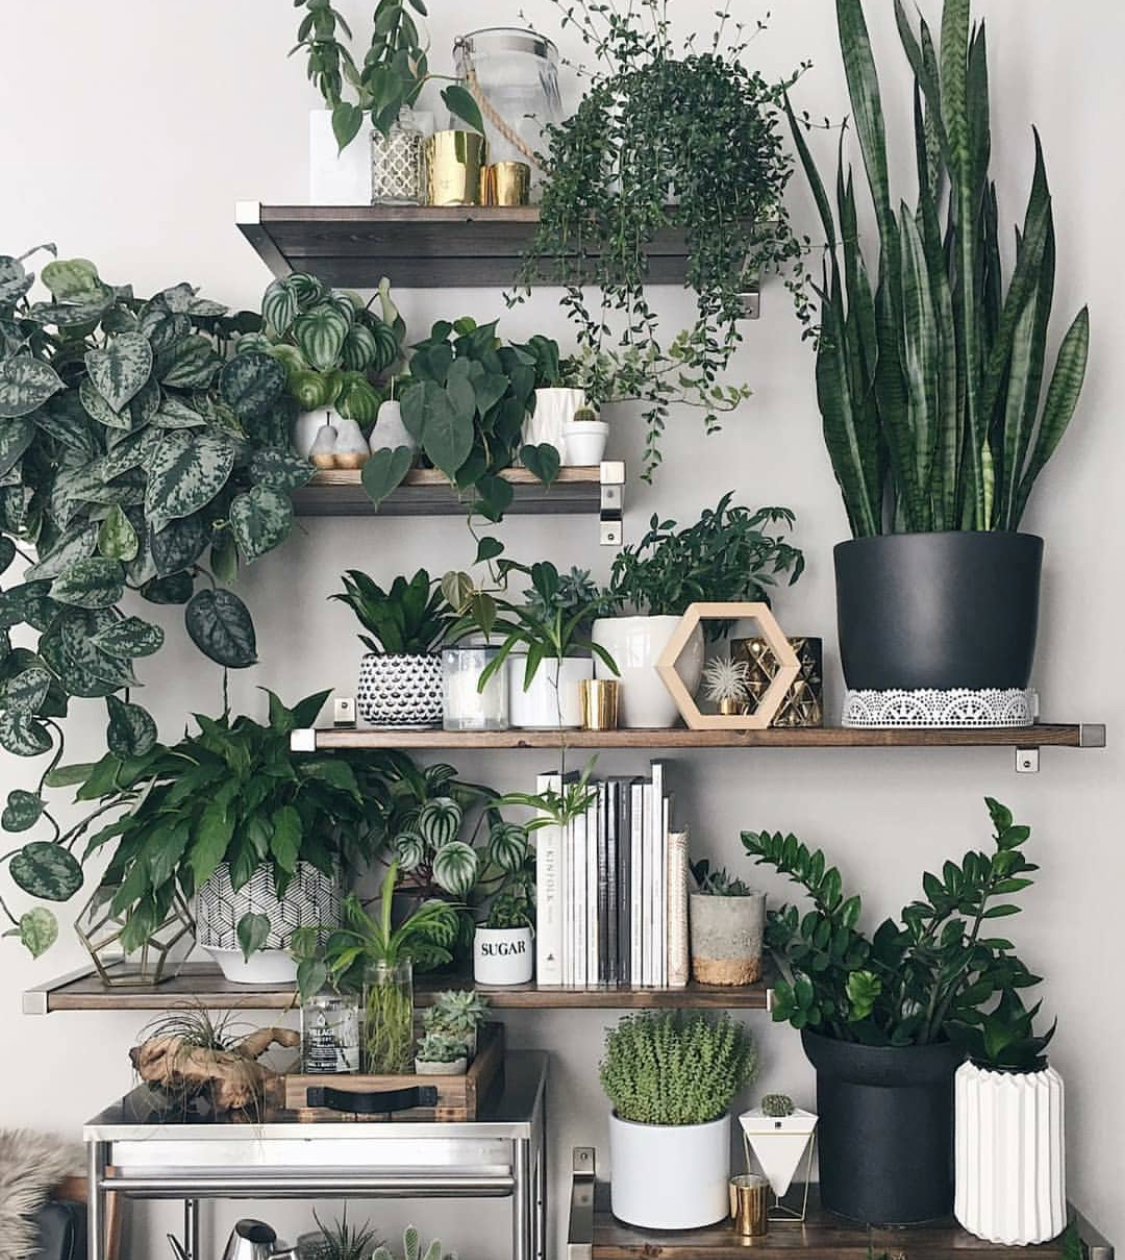 A perfect plant situation.  Photograph via Instagram  @melissamlo .